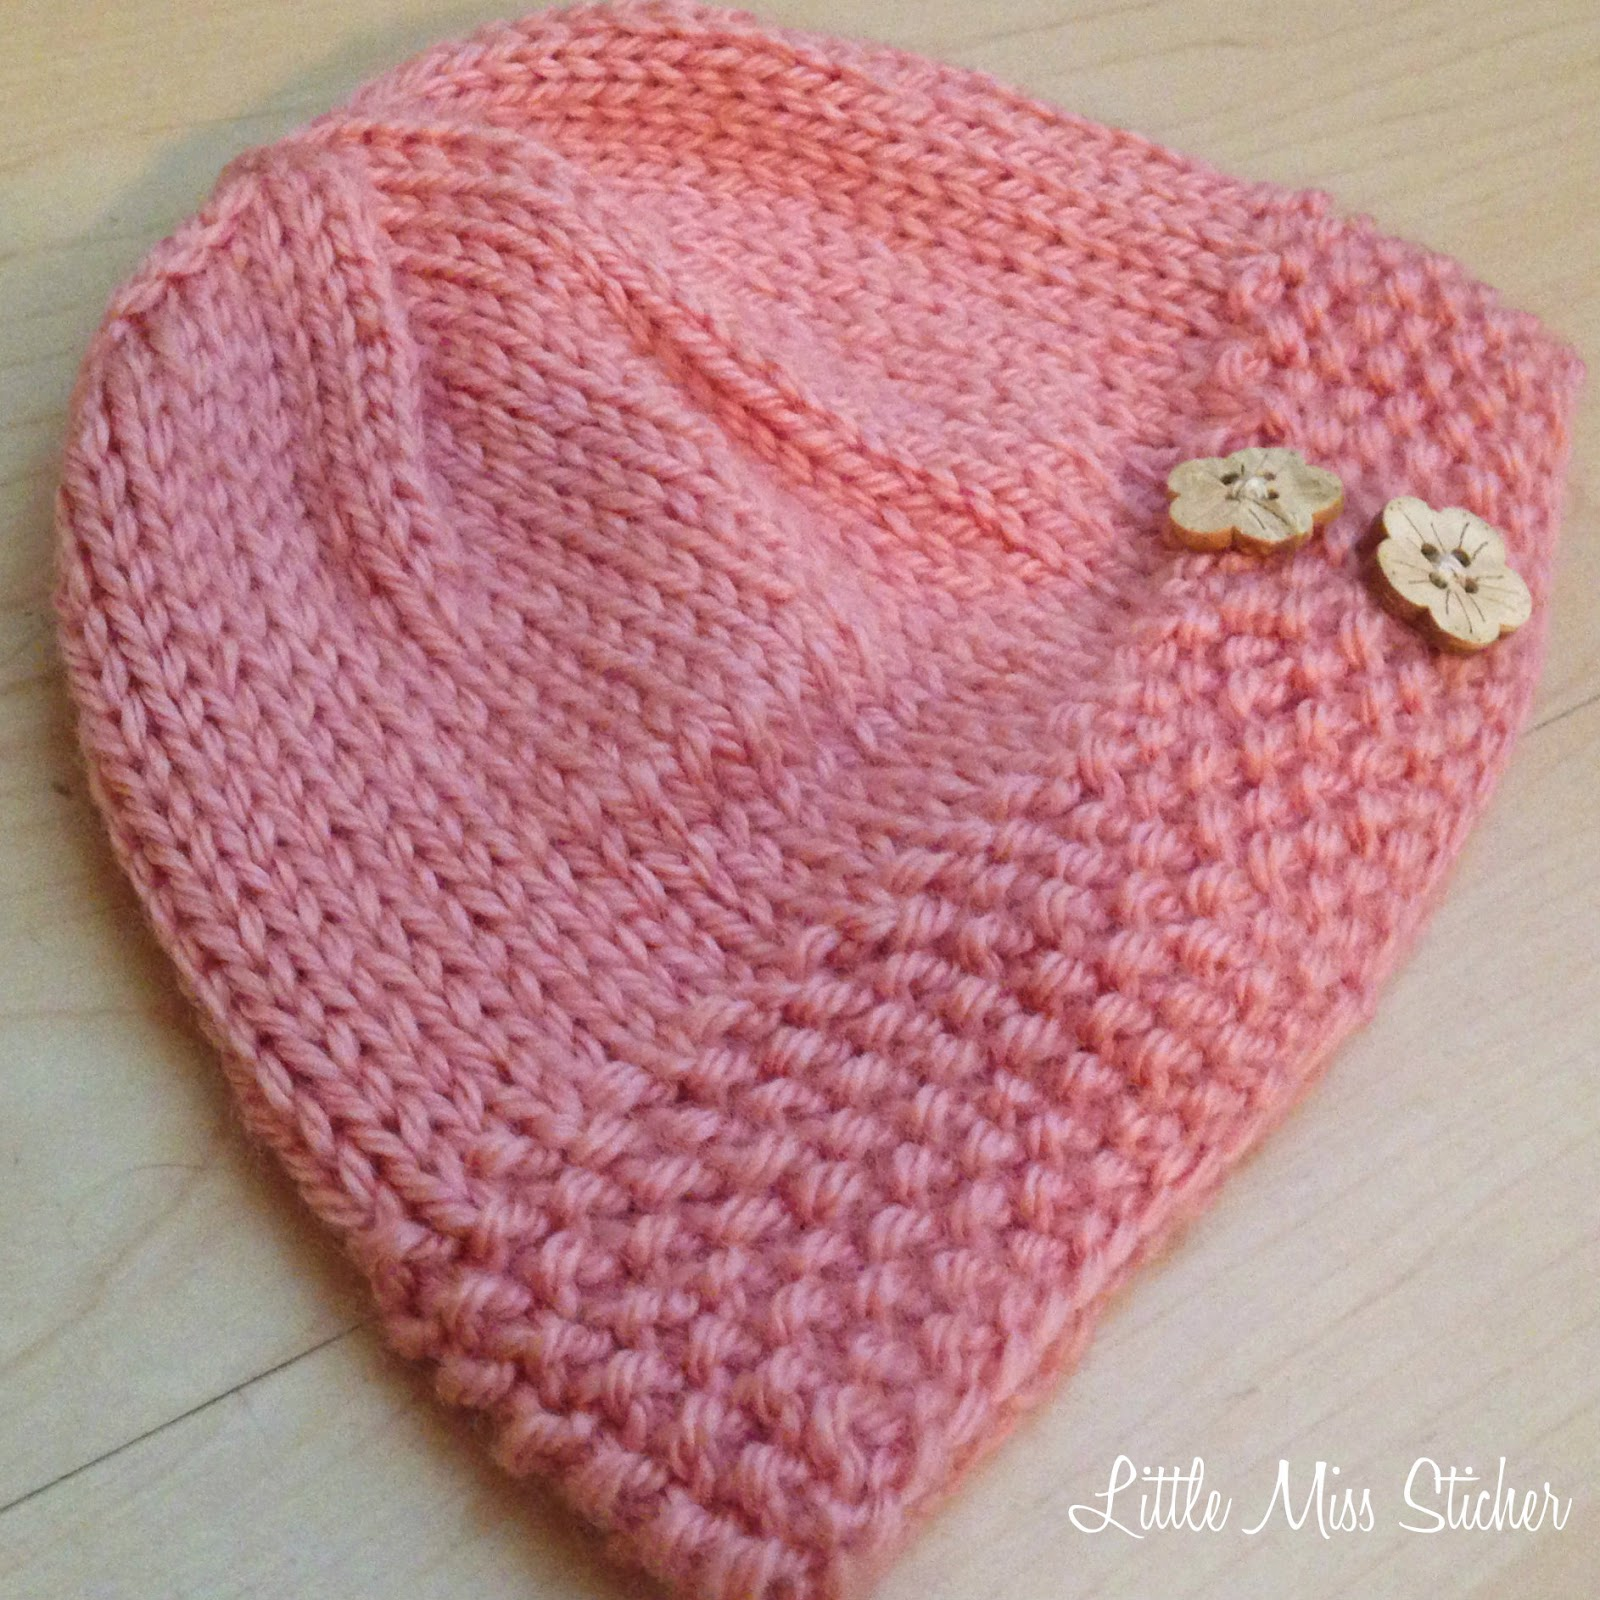 Knitting Patterns For Toddler Hats : Free Easy Knit Hat Pattern Search Results Calendar 2015